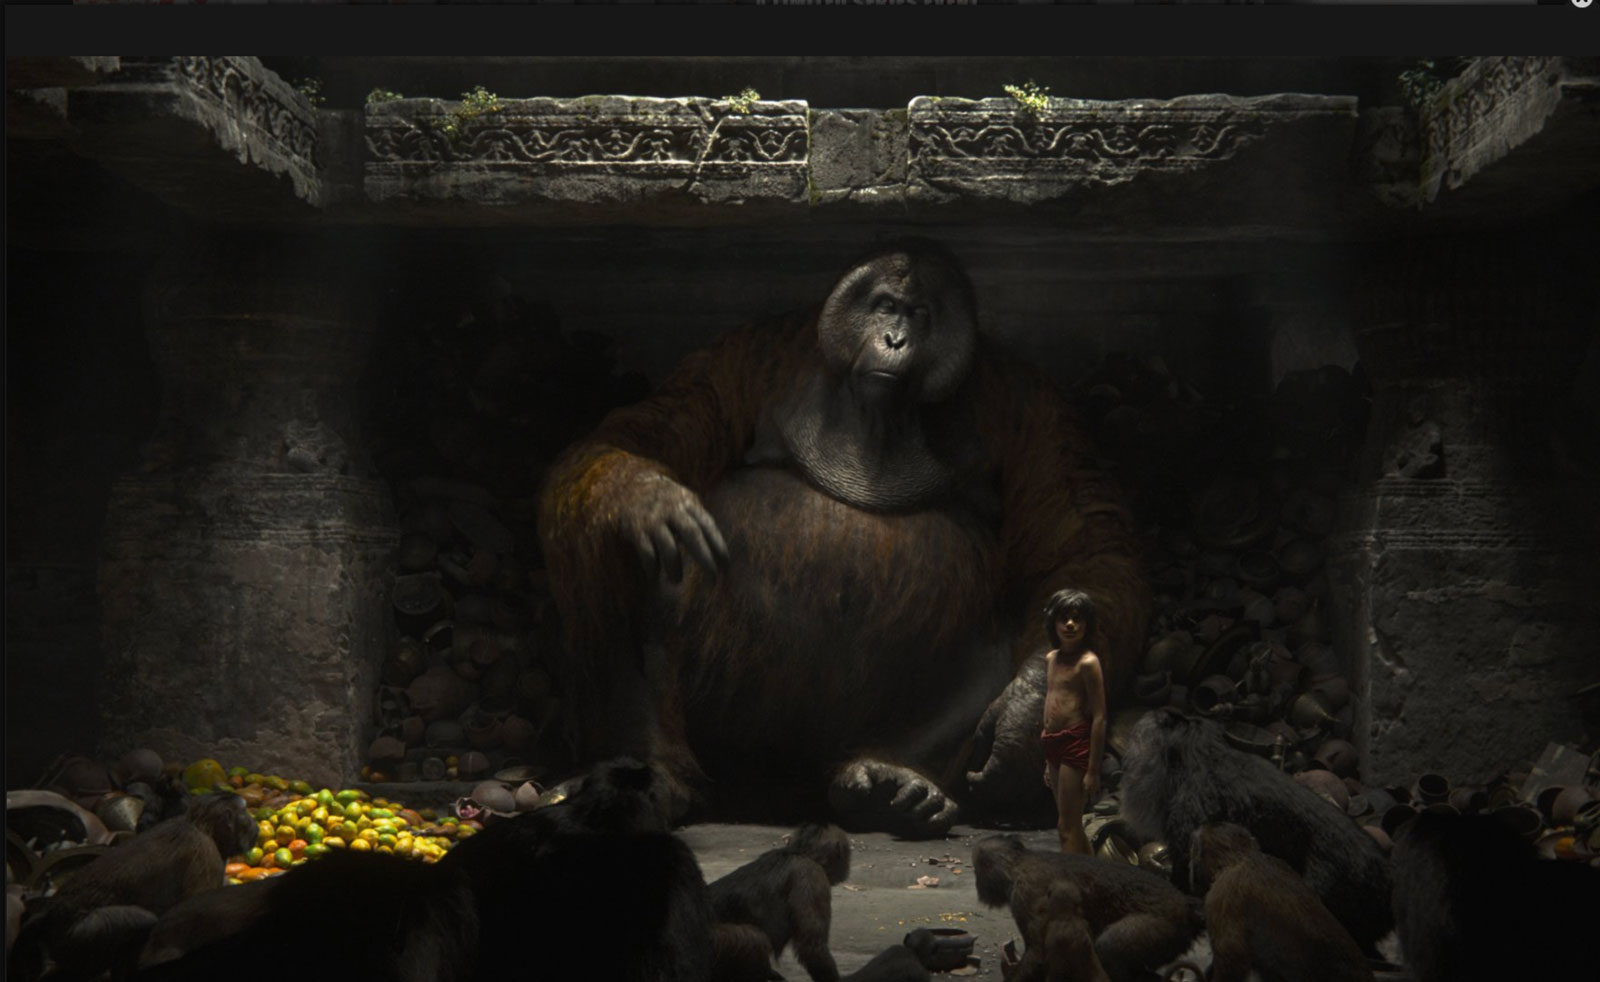 Louie, King of the Apes, voiced by Christopher Walken